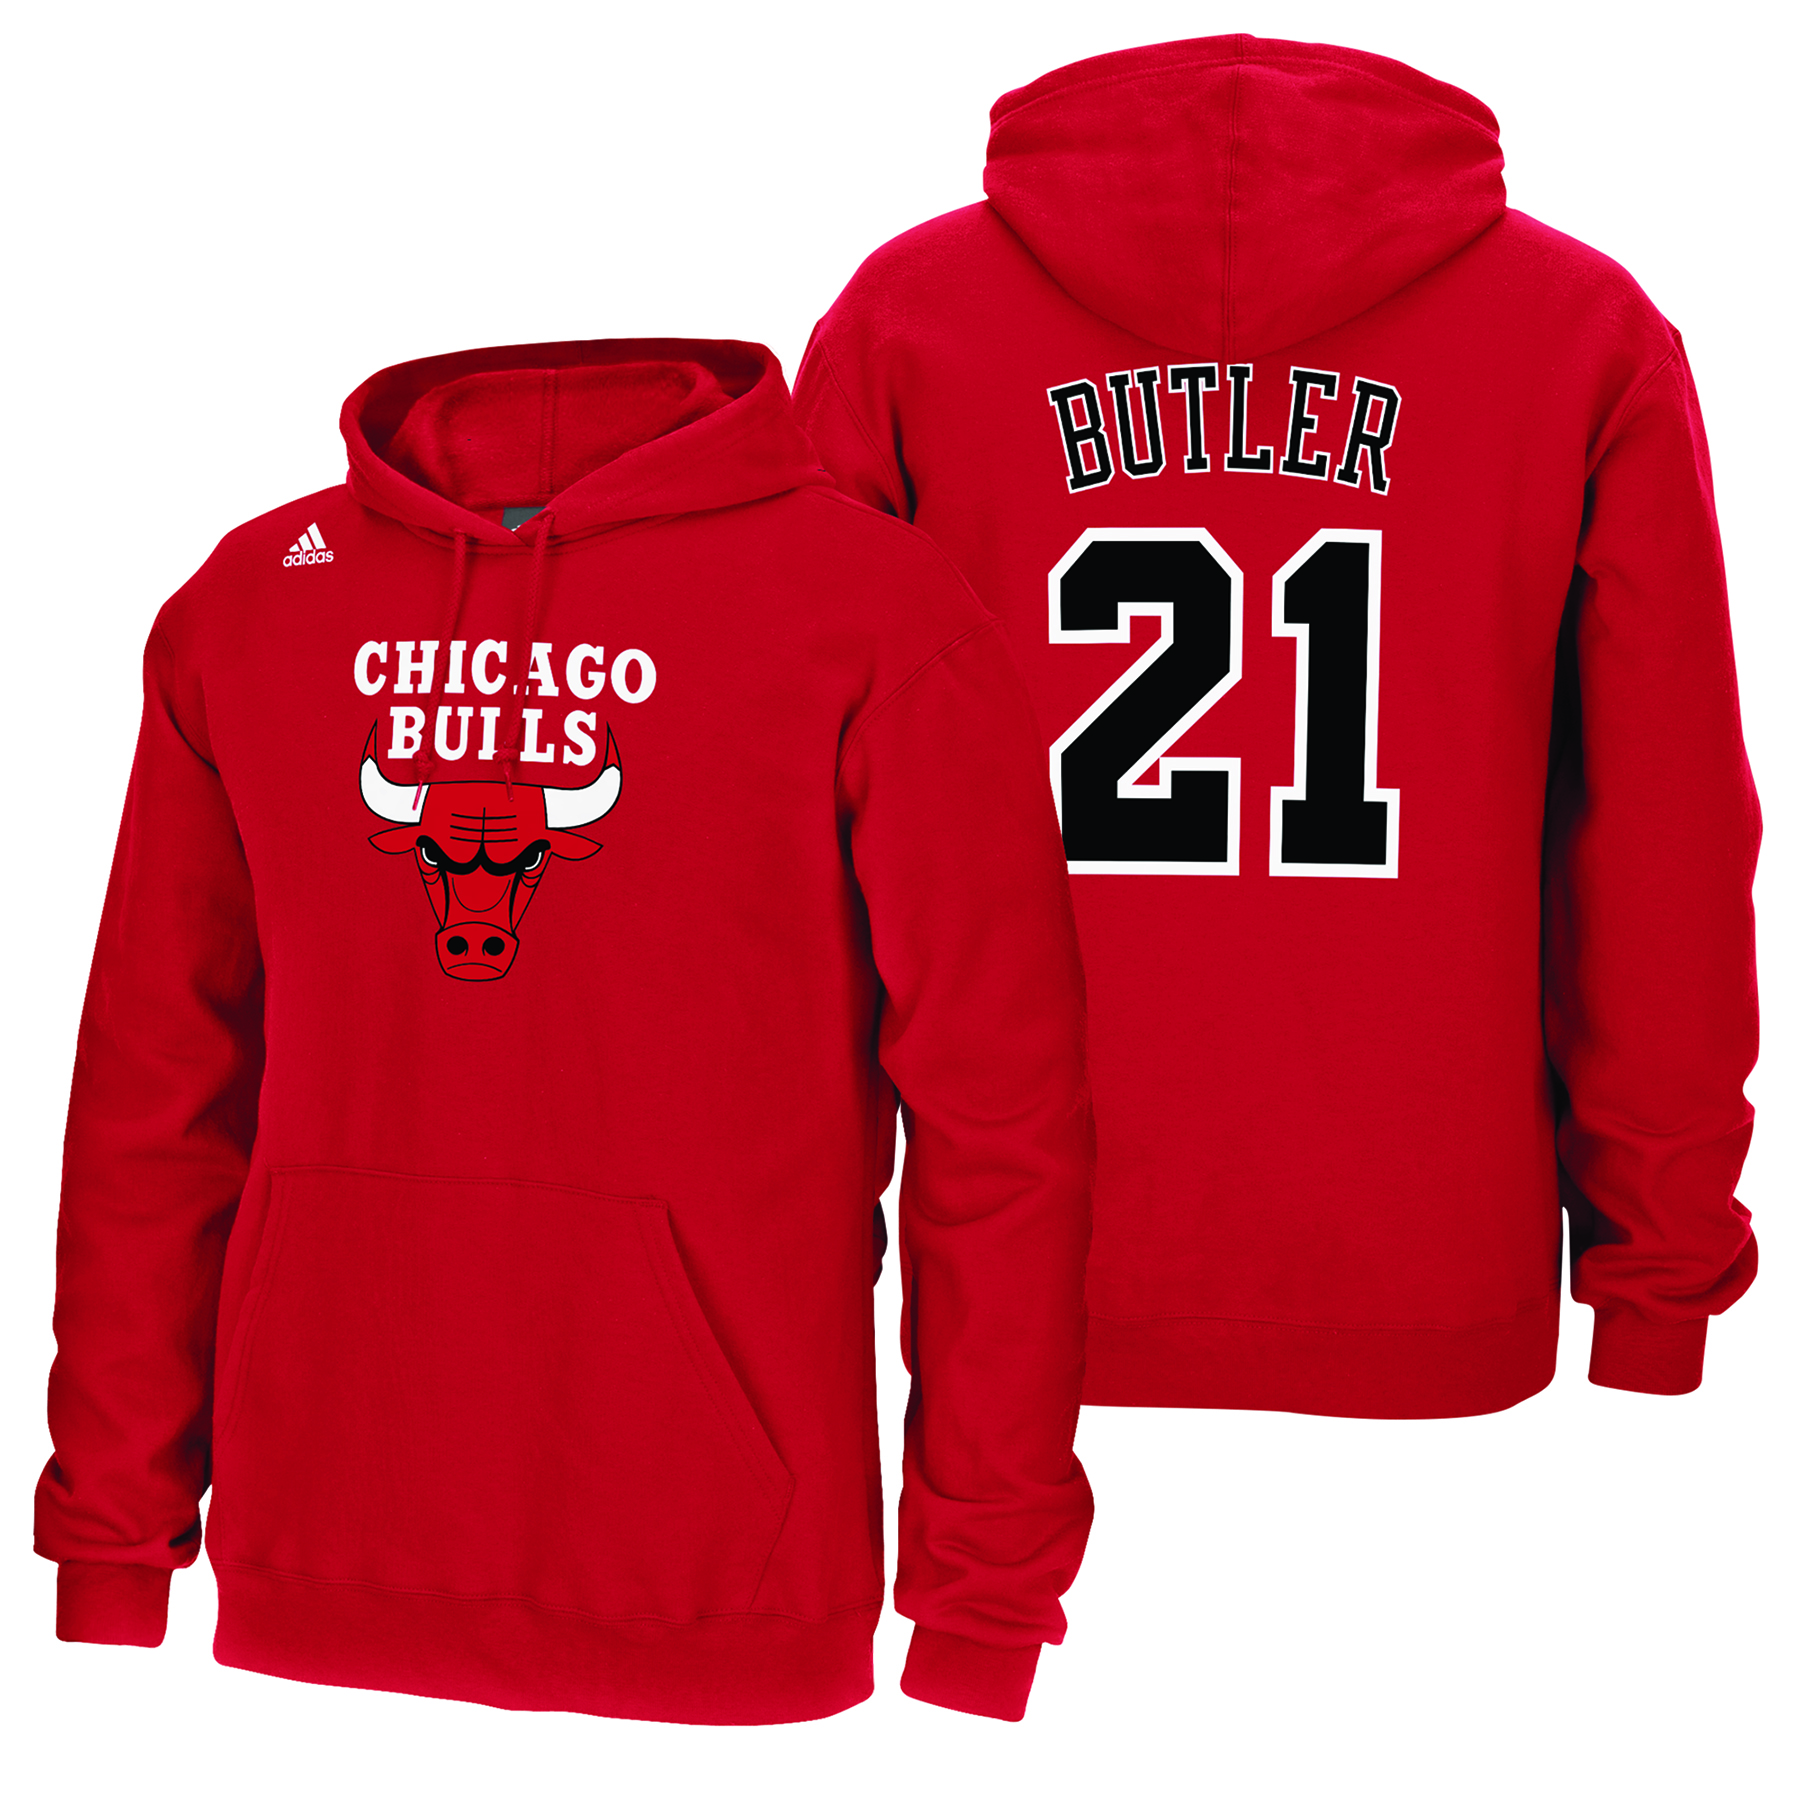 Chicago Bulls adidas Name & Number Hoodie - Jimmy Butler